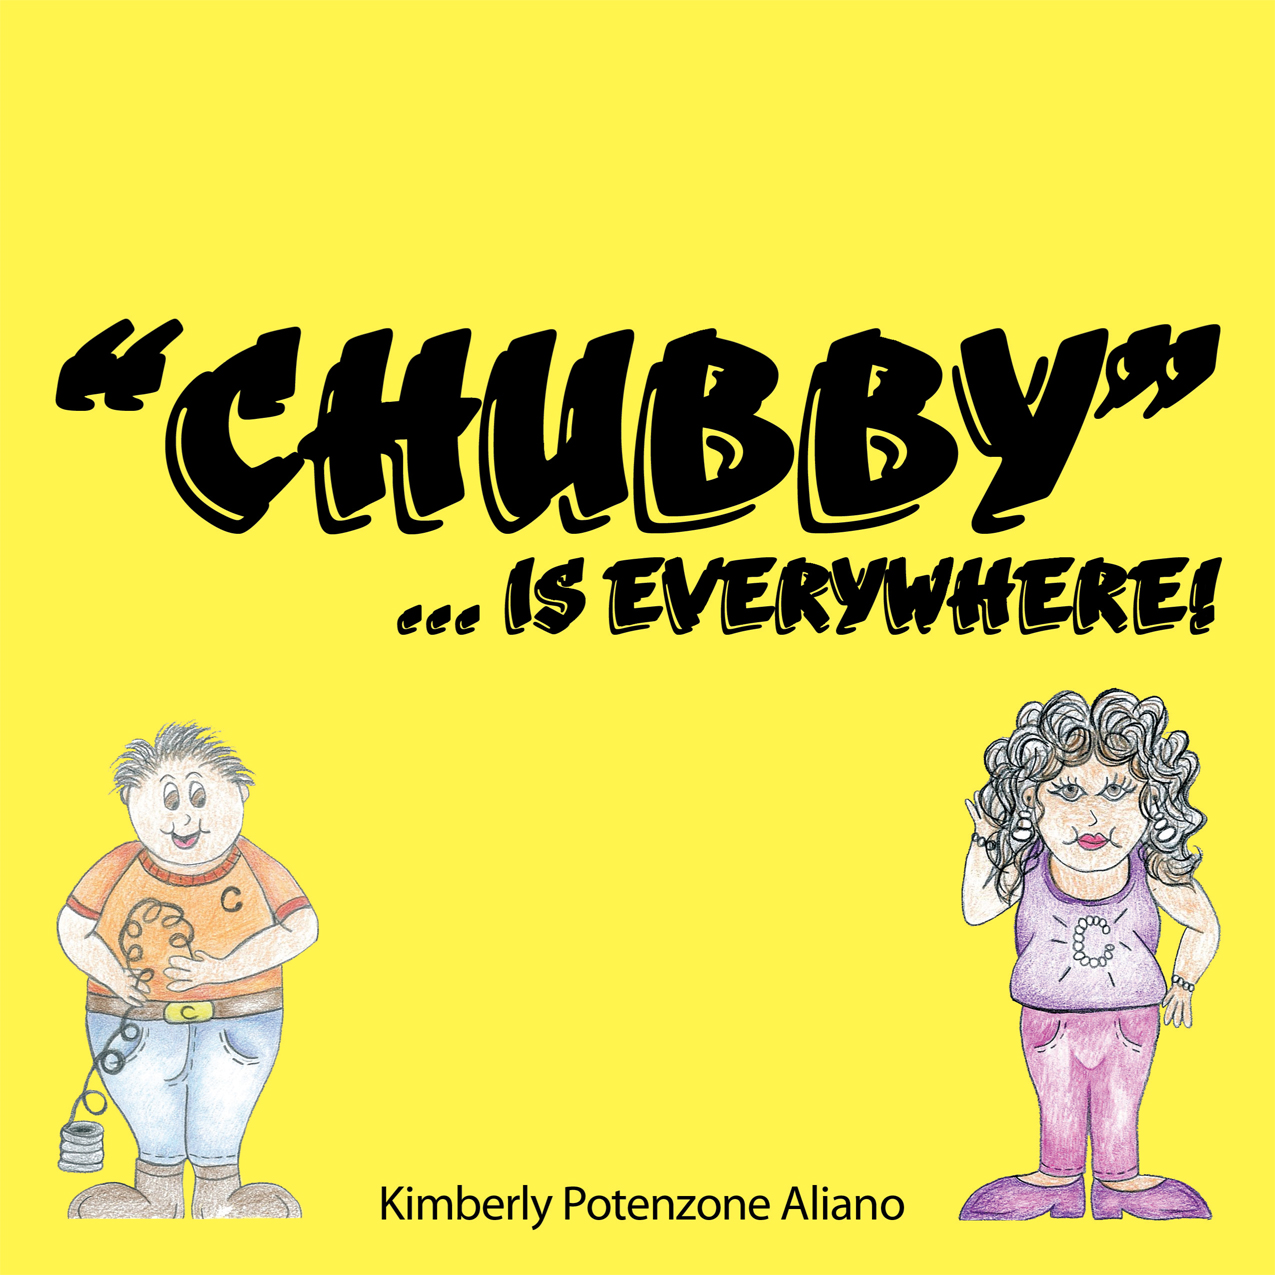 """CHUBBY""… is everywhere! By: Kimberly Potenzone Aliano"